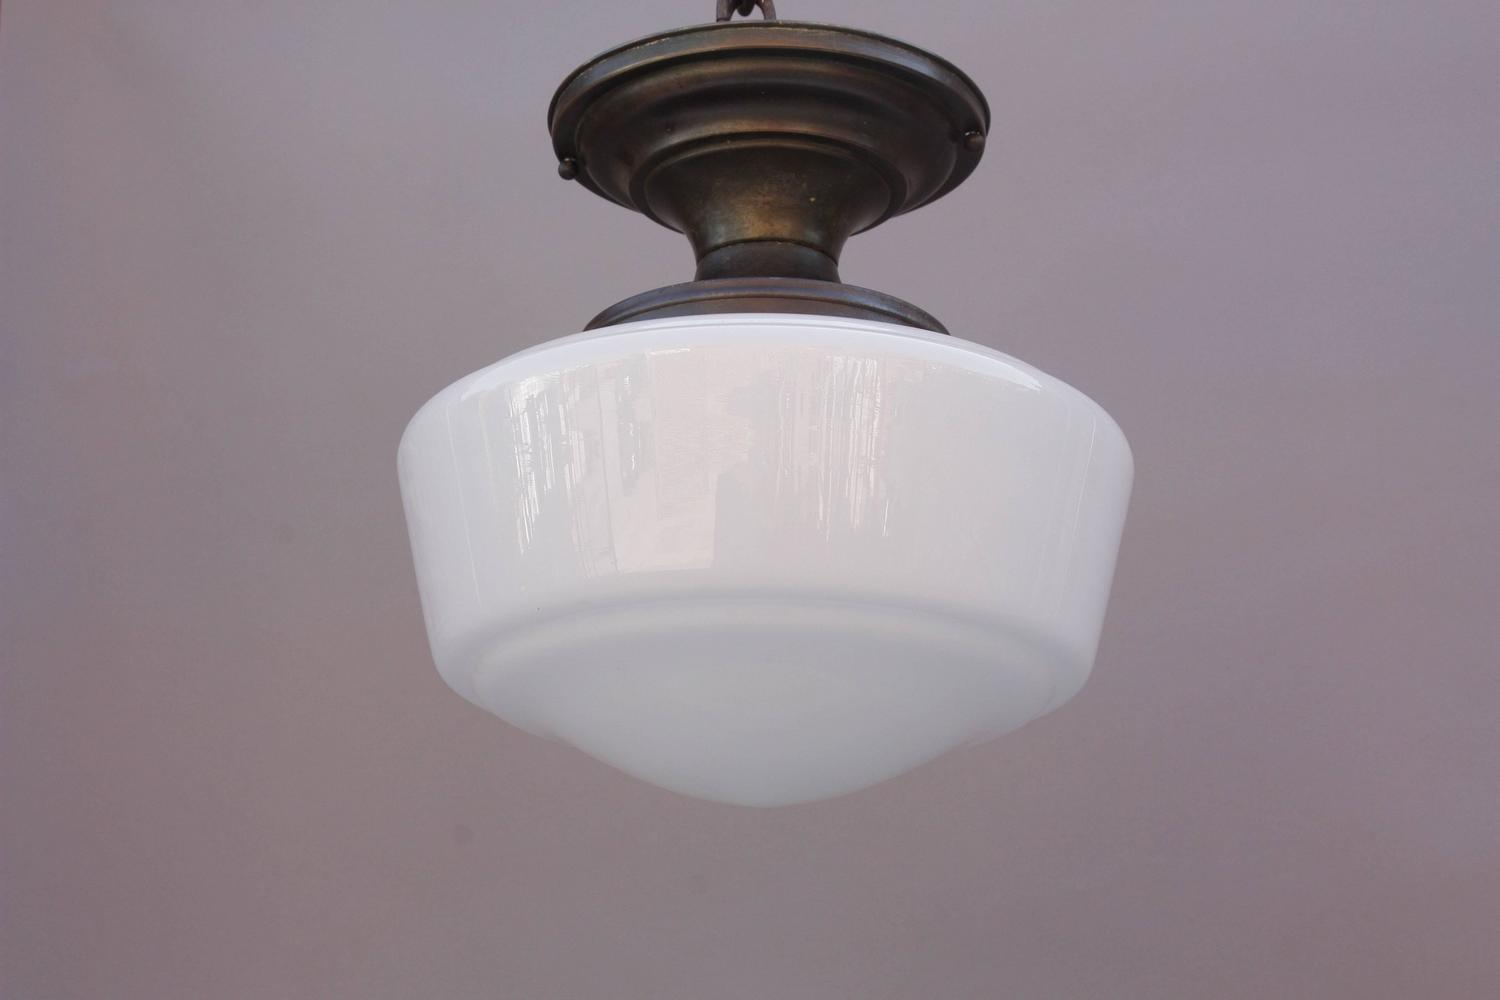 1930s Ceiling Light Fixture With Milk Glass Globe For Sale